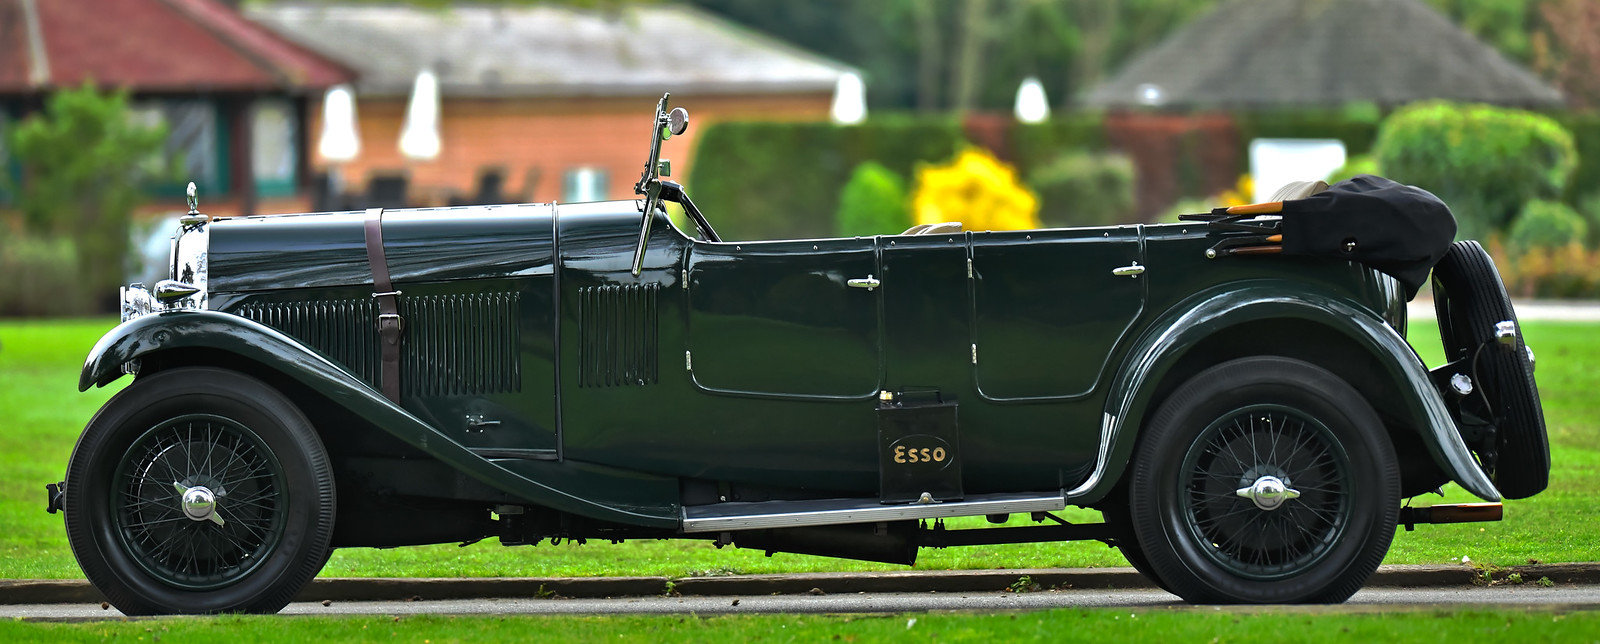 1931 Hotchkiss AM80 Grand Tourer by Gurney Nutting For Sale (picture 2 of 6)